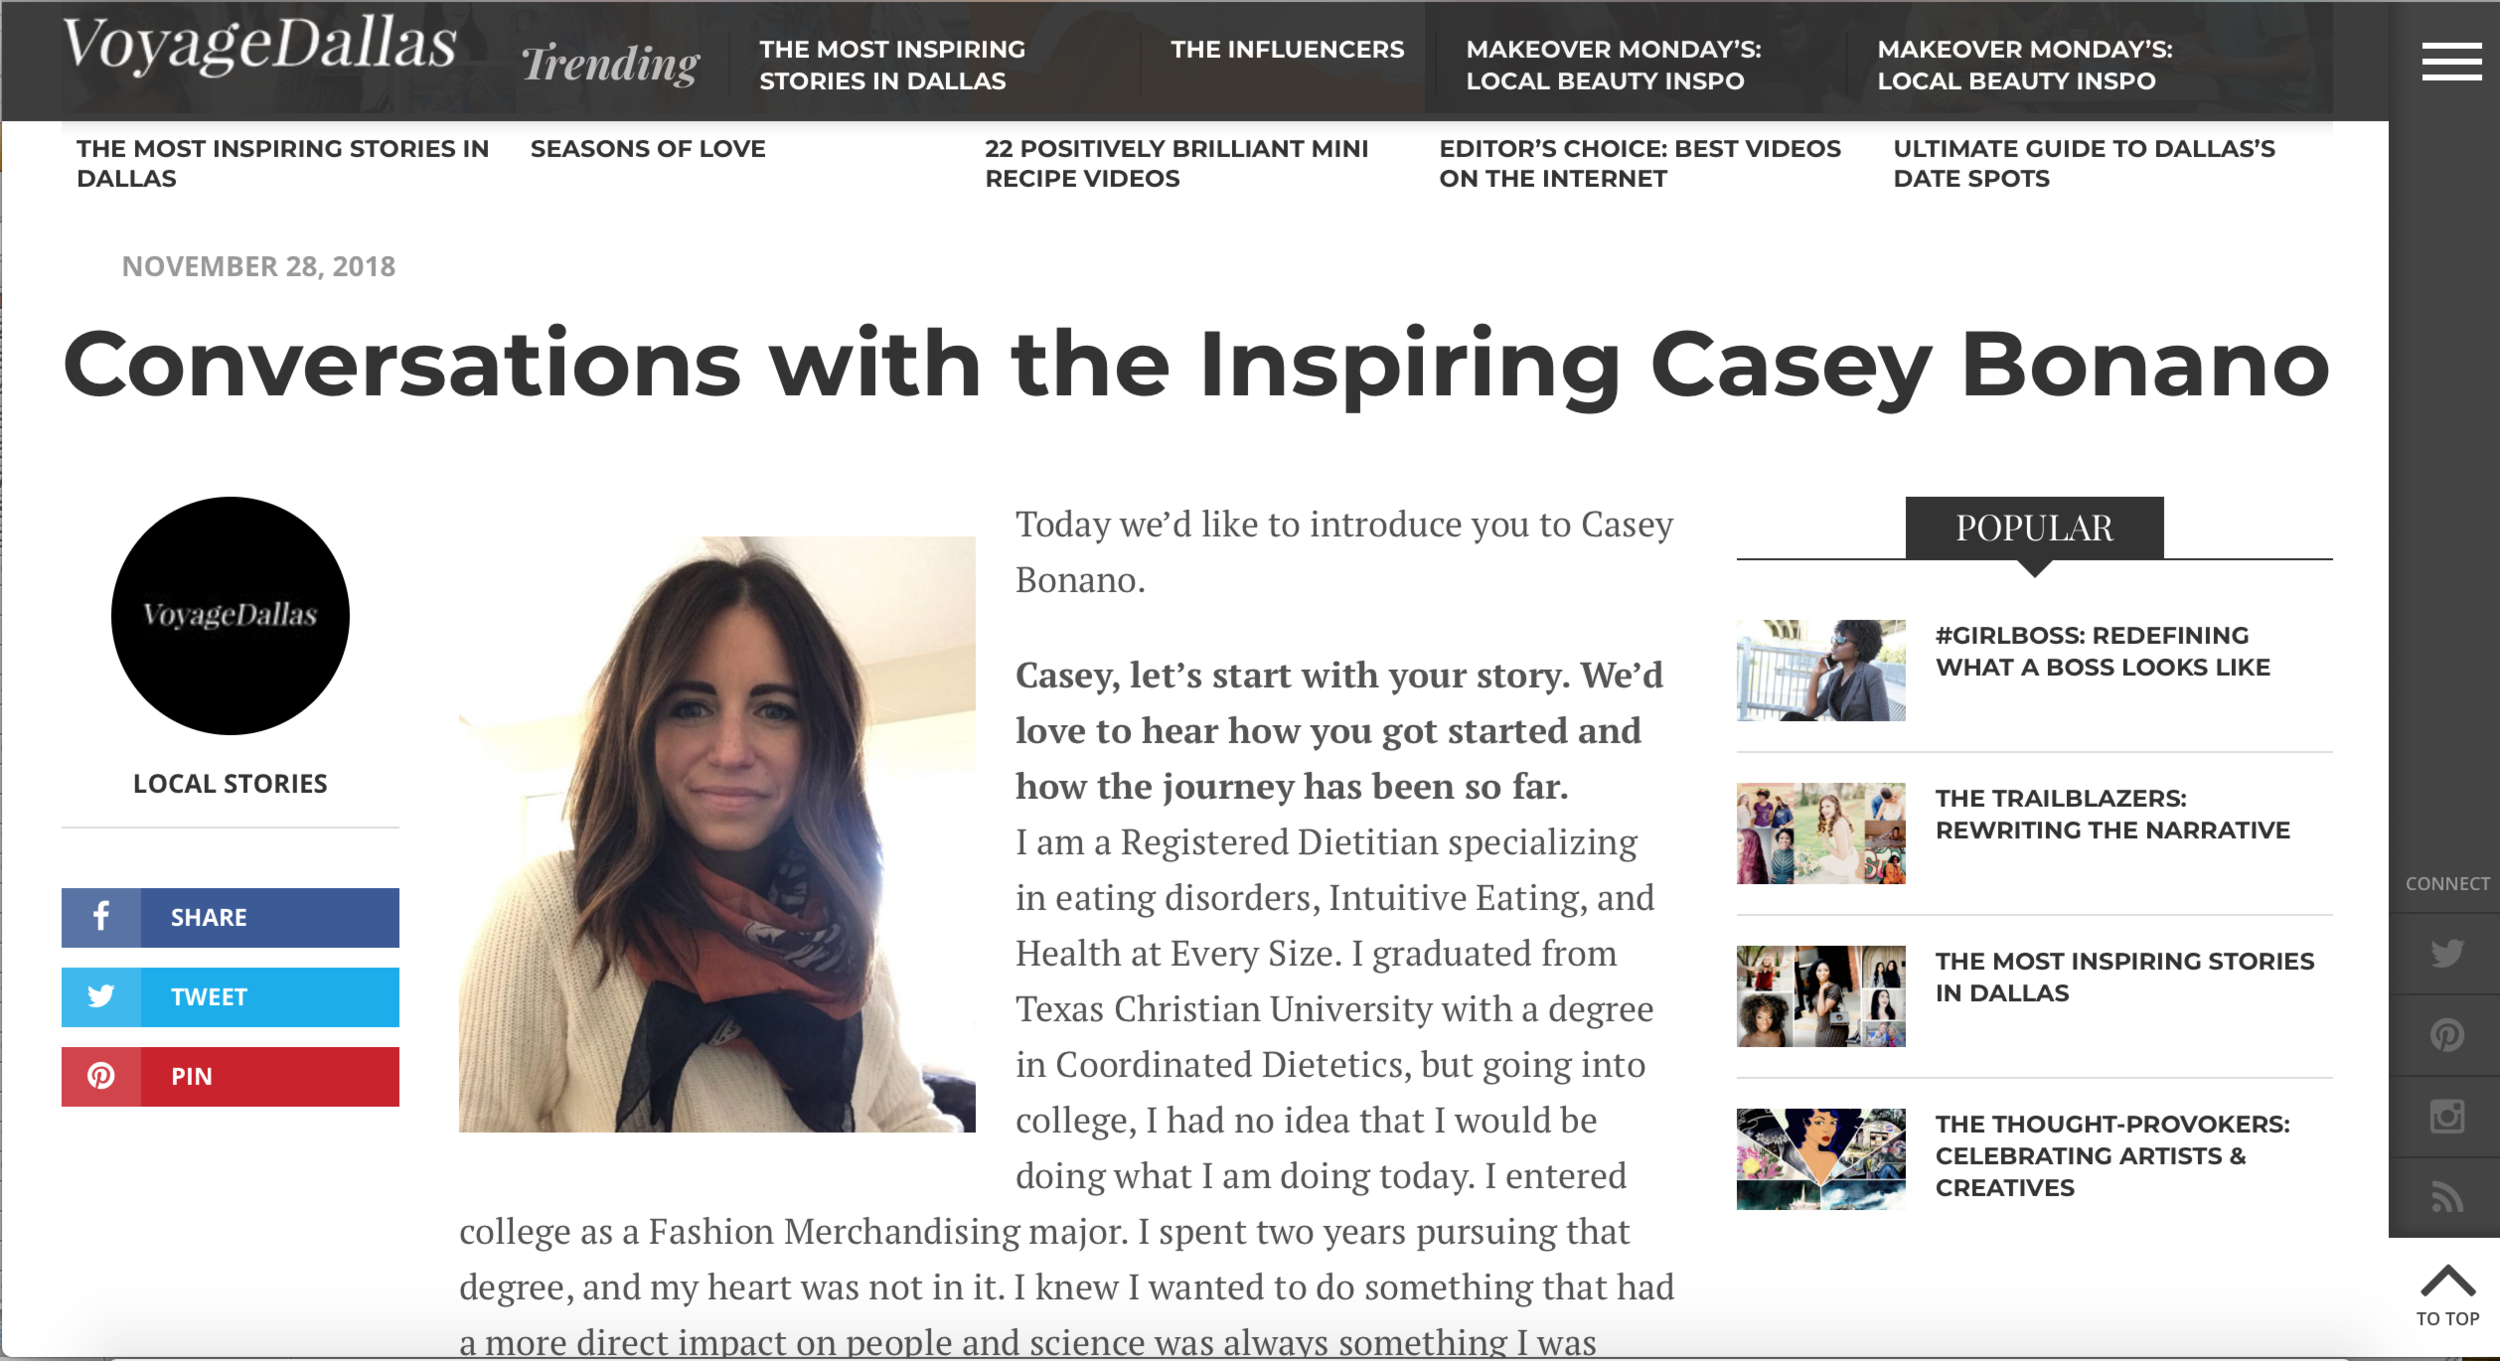 Dallas Nutritional Counseling - Voyage Dallas Magazine Interview Casey Bonano #dallasnutritionalcounseling #voygagemagazine #voyagedallas #dallasfoodblog #dallasfoodie #dallasdietitian #nutritionblog #eatingdisorders